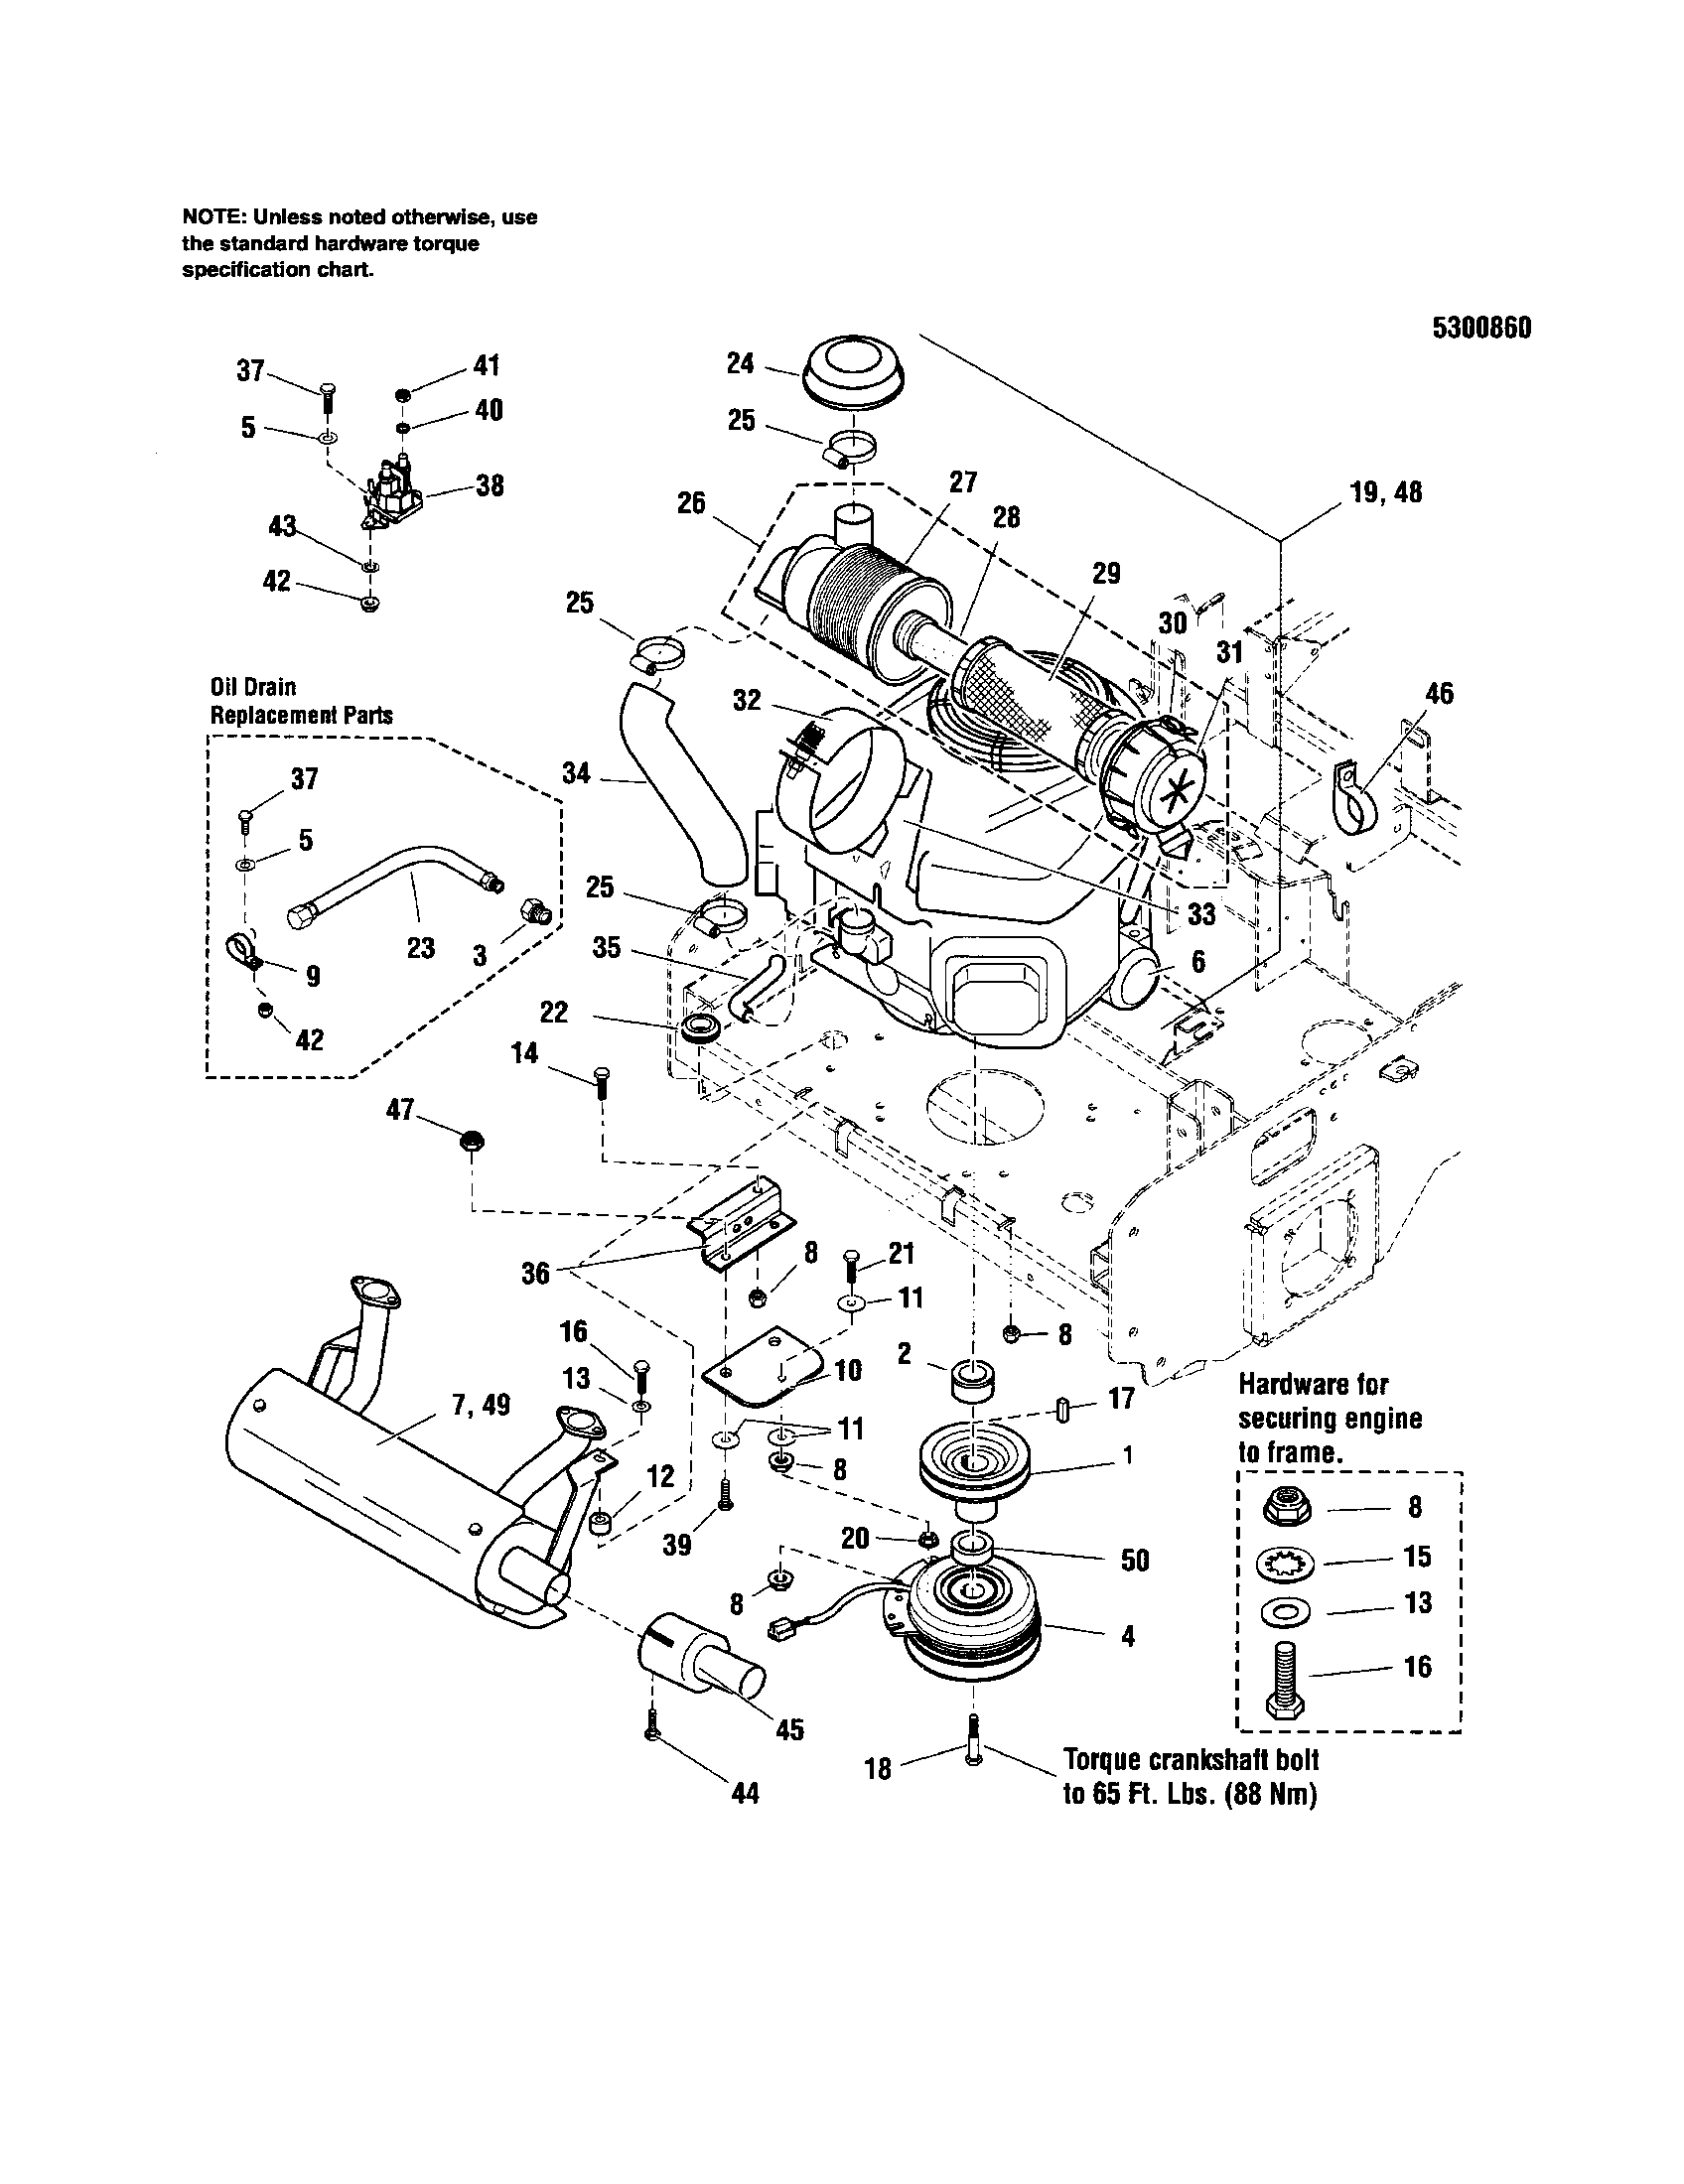 Snapper zero turn riding mower parts model 5900692 sears partsdirect rh searspartsdirect 27 hp kohler engine parts diagram kohler 27 hp engine parts